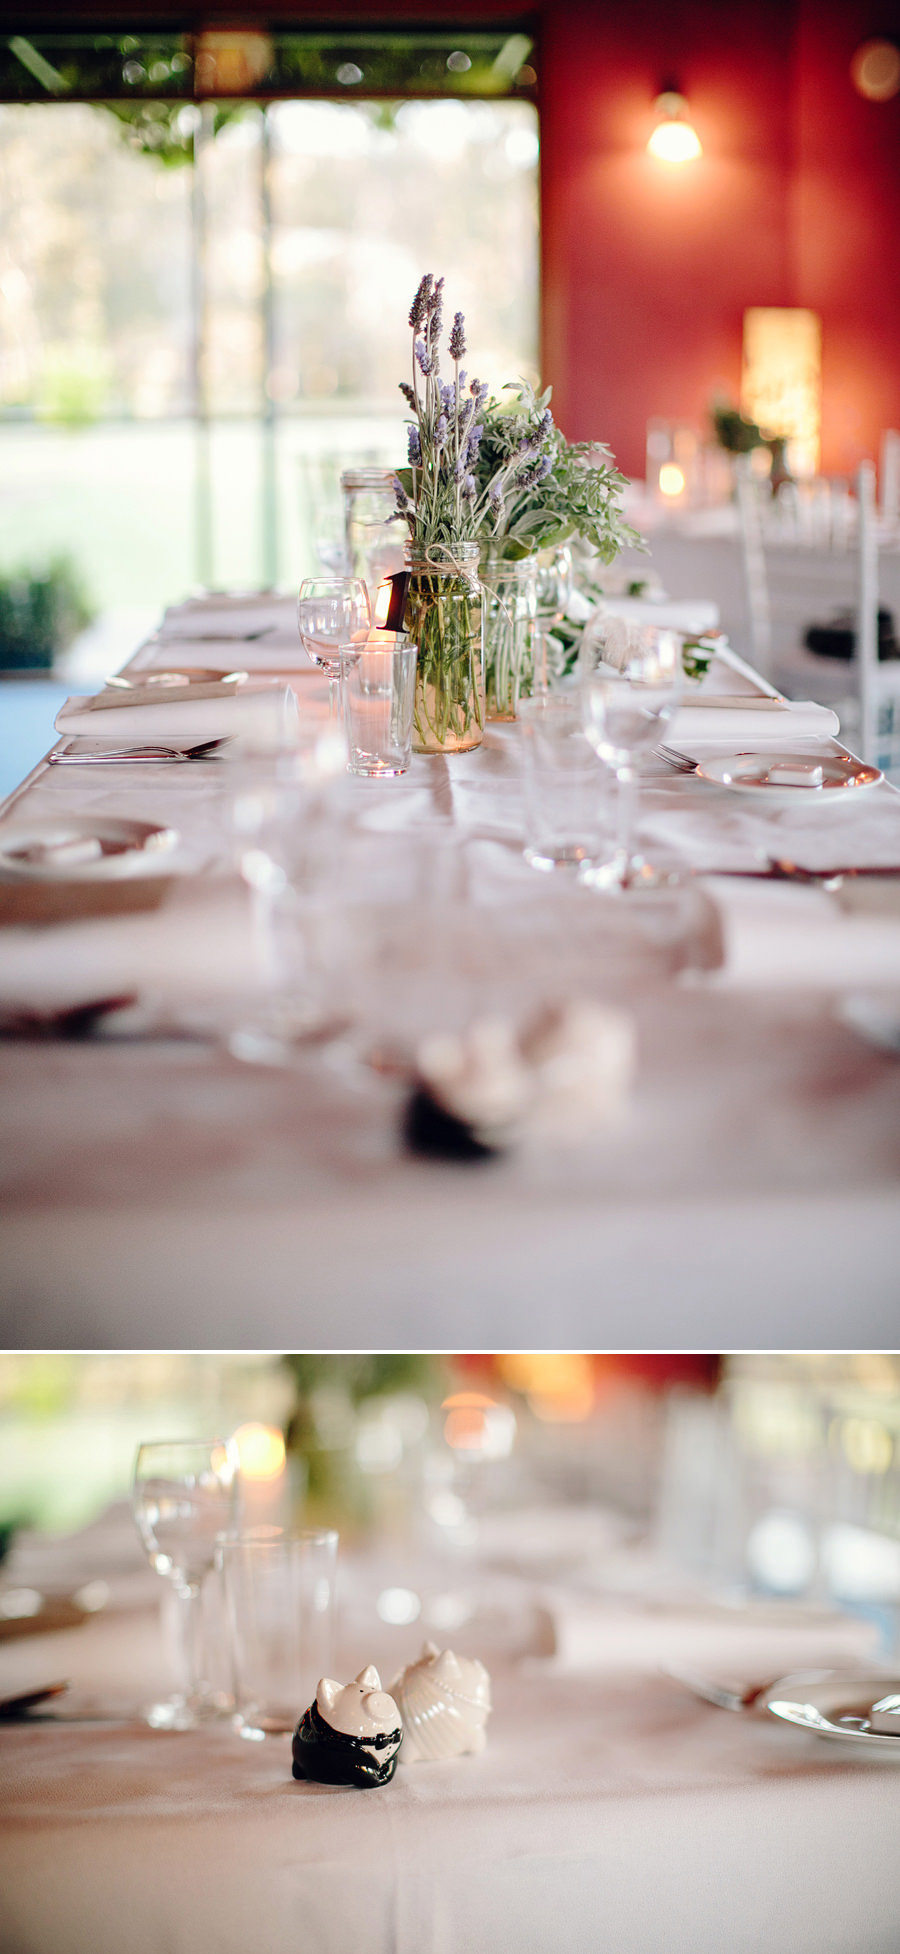 Eat Your Greens Wedding Photographer: Room styling